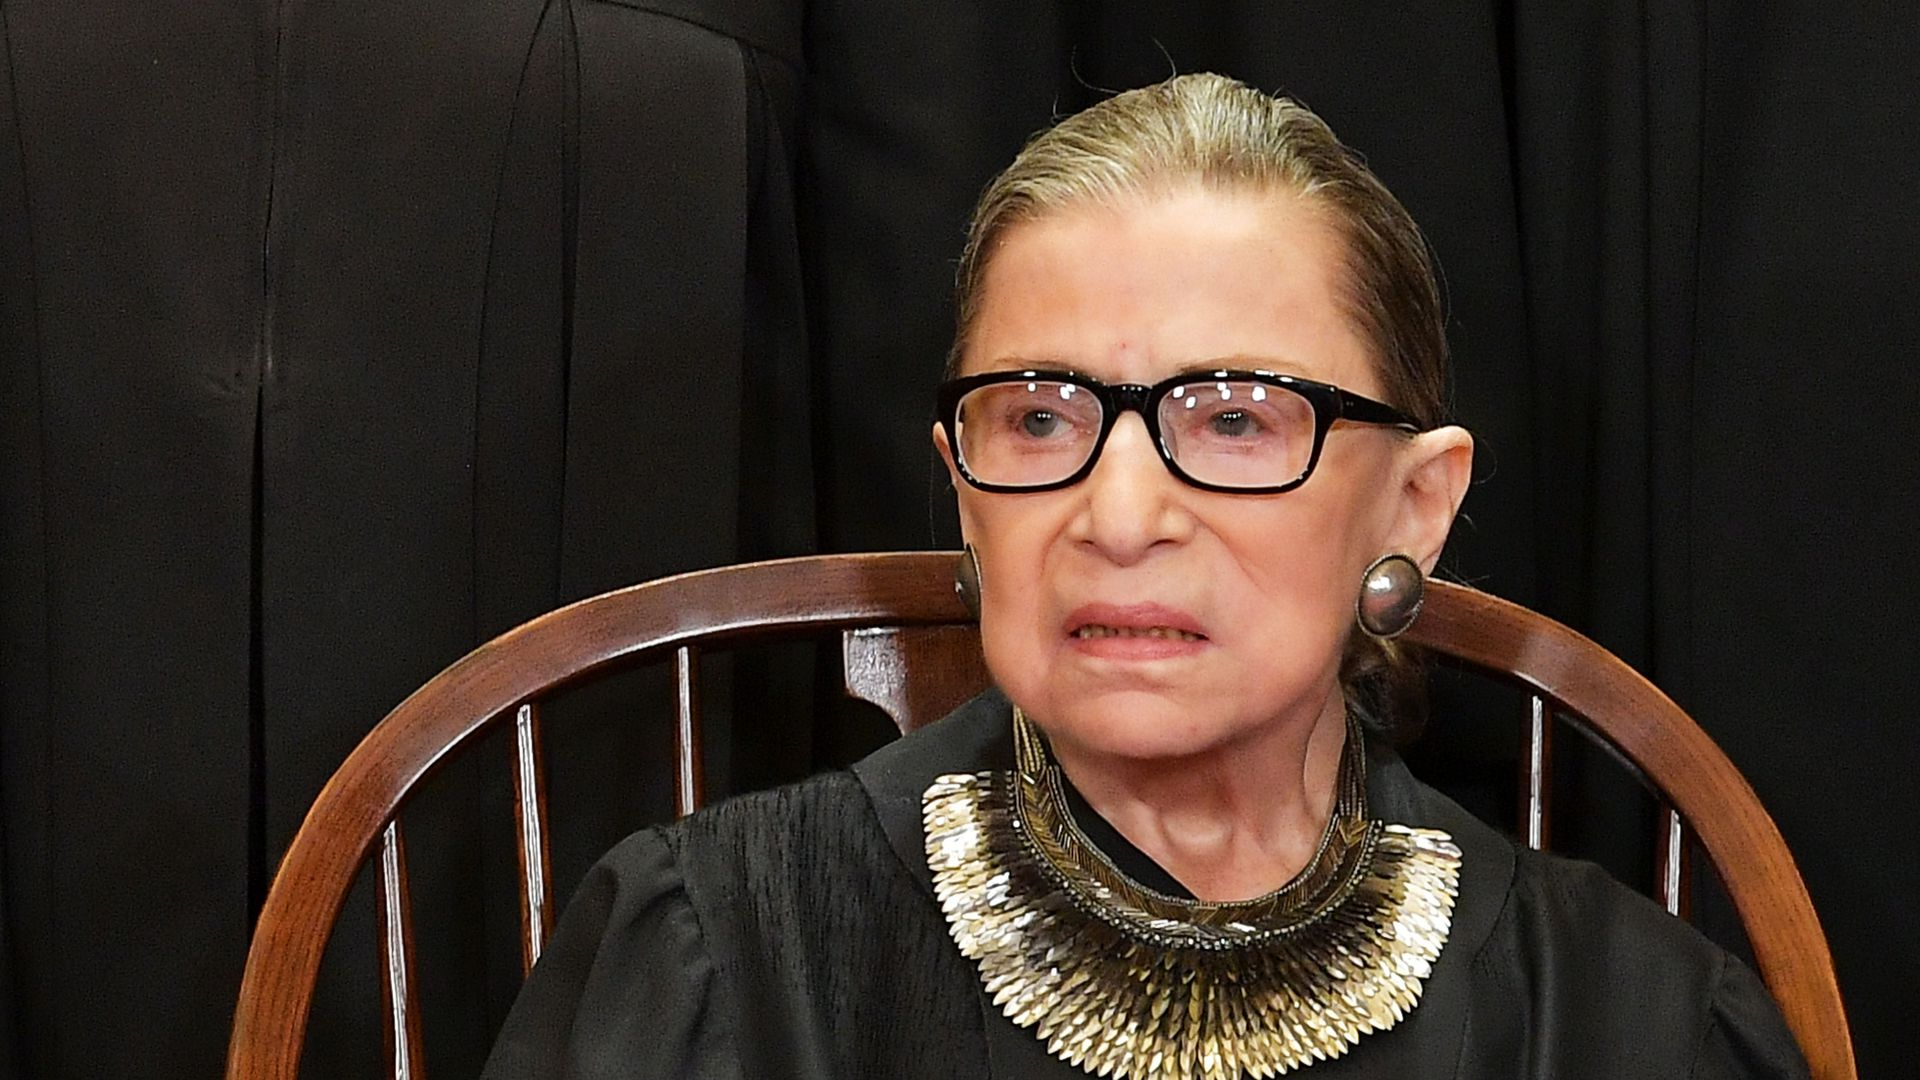 Ruth Bader Ginsburg in her garb